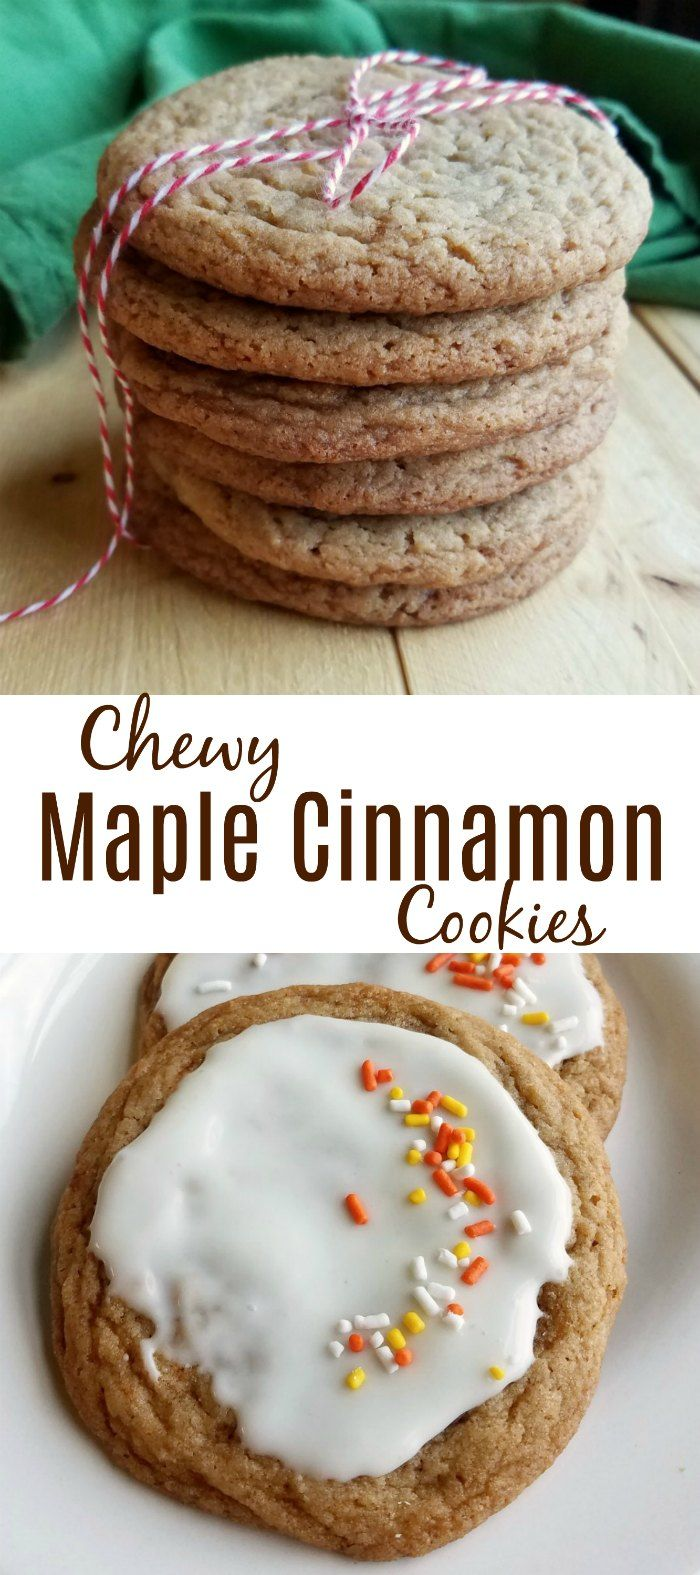 These cookies are kissed with the warmth of maple and brown sugar and a hint of cinnamon.  They are big and chewy and oh so good! #oxogoodcookies #yummy #cookies #ad